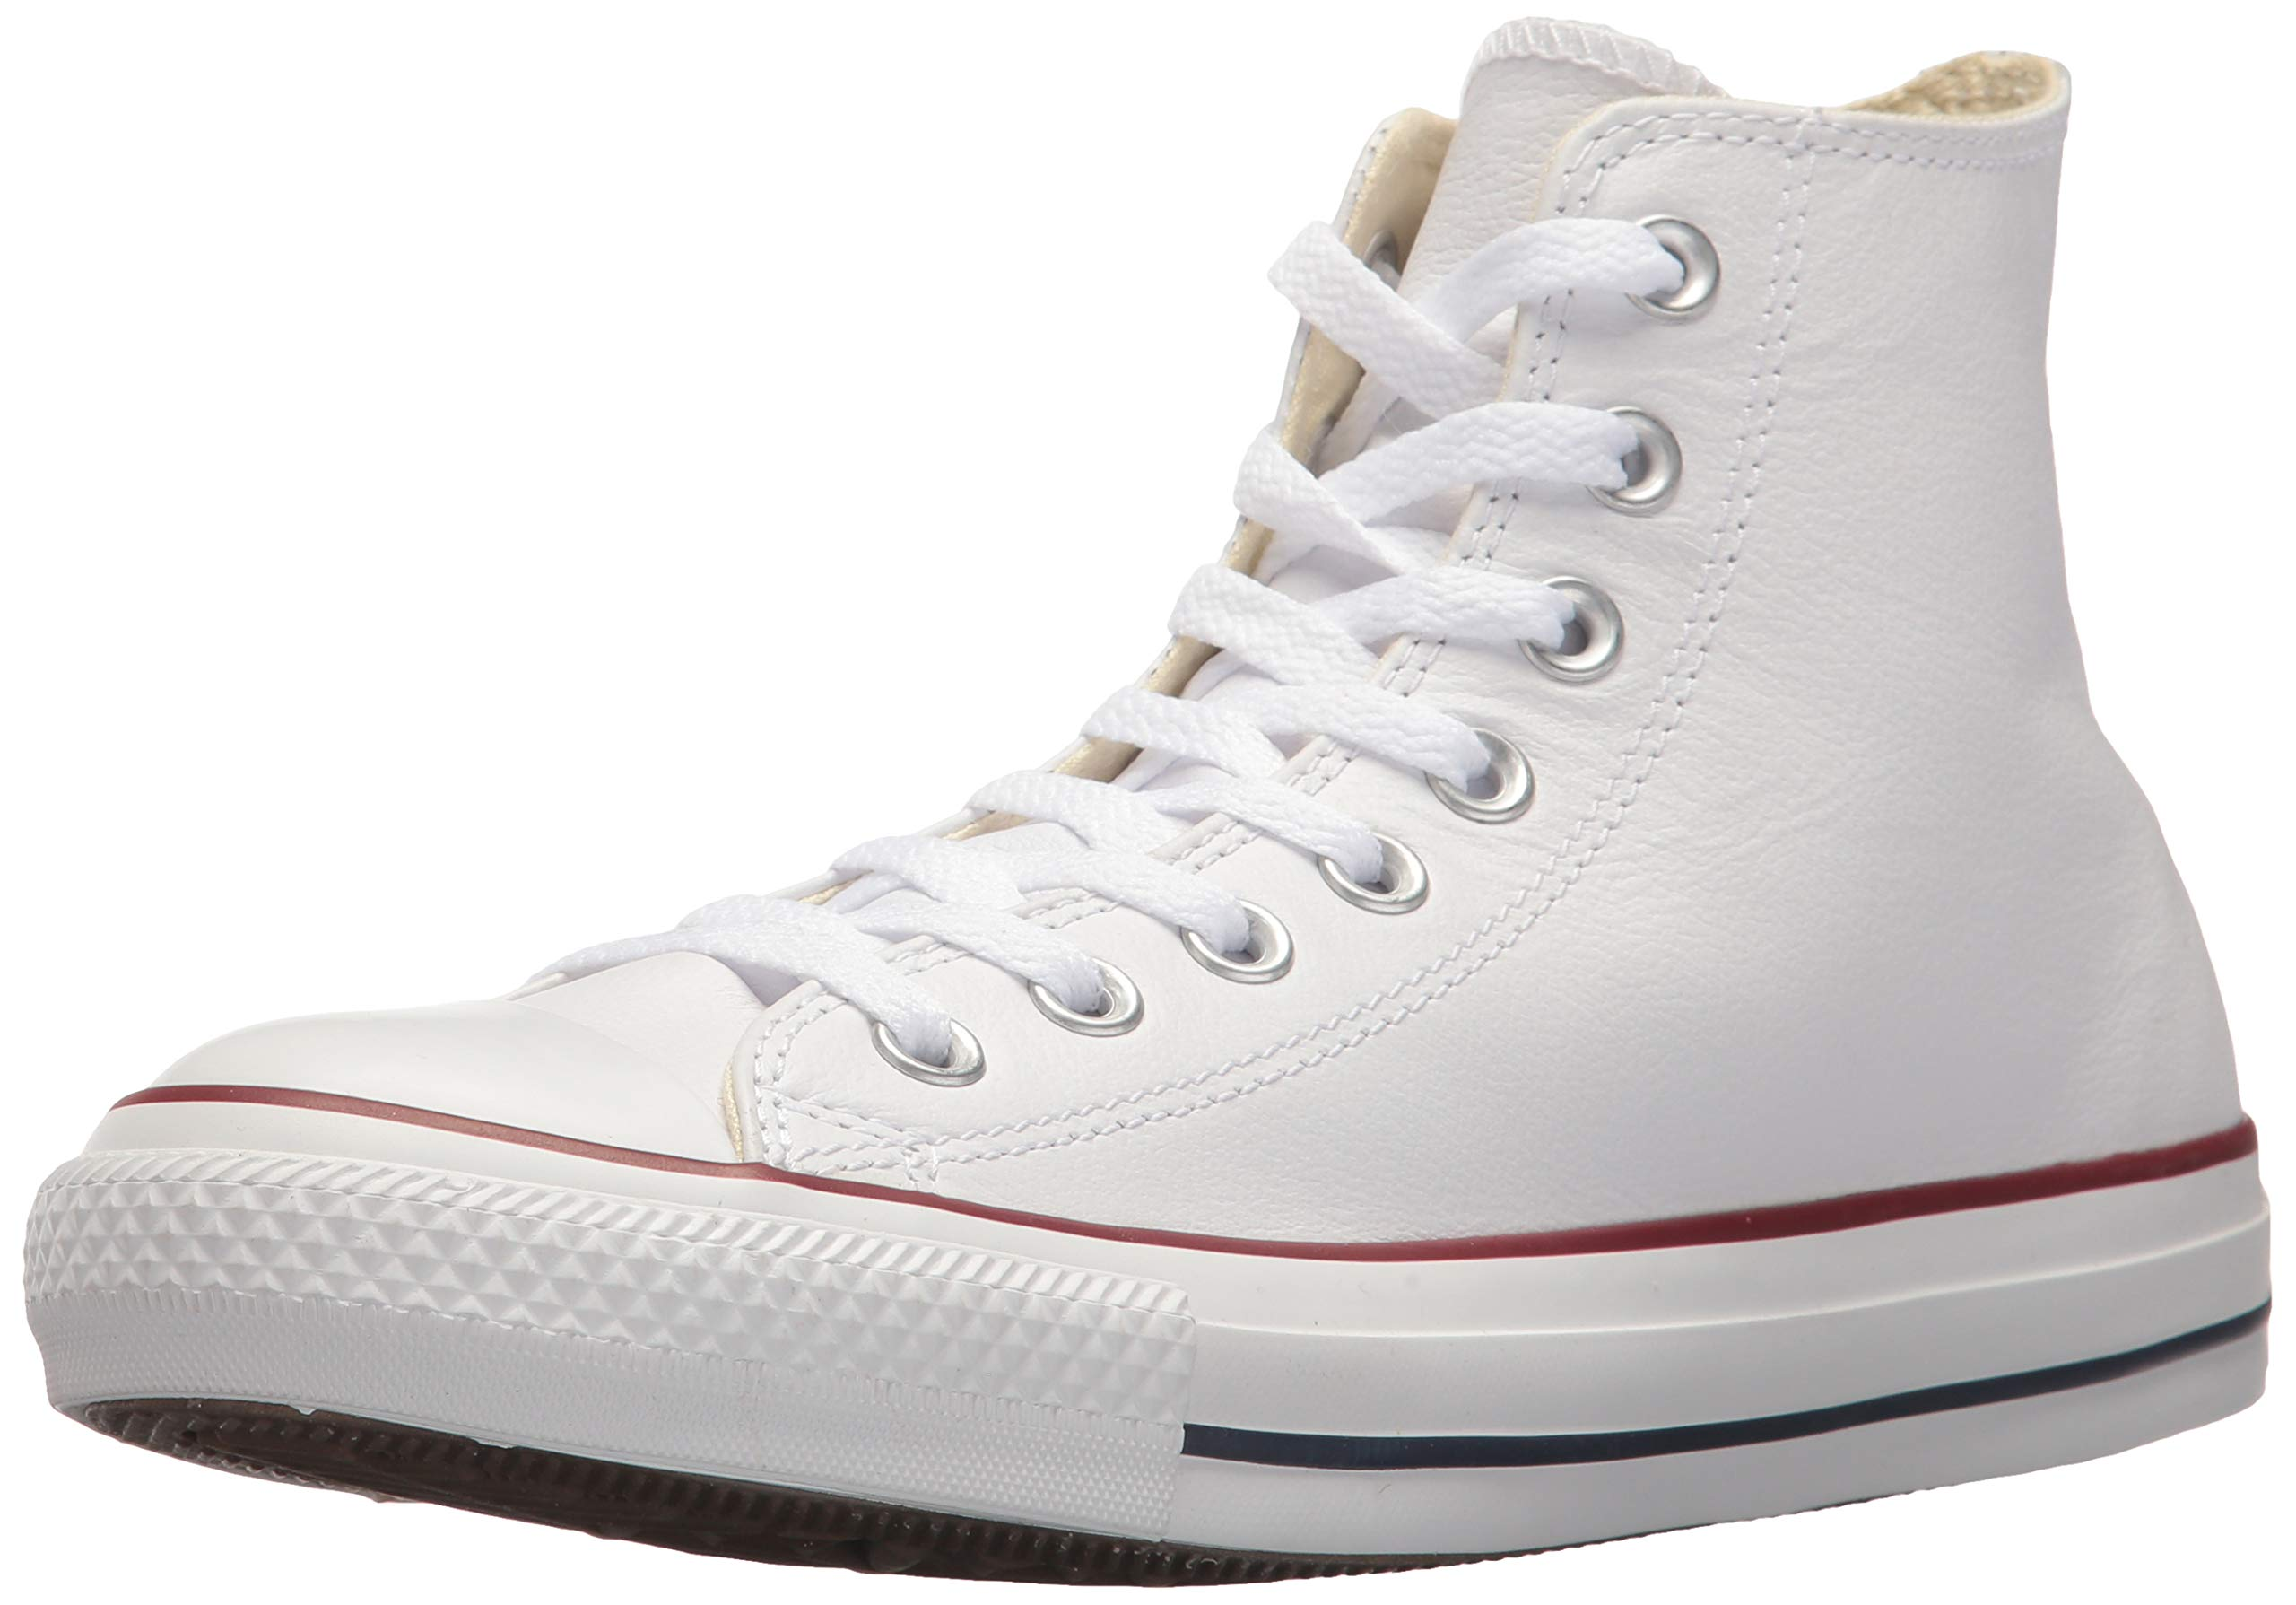 Converse Chuck Taylor All Star Leather High Top Sneaker,  white, 13 Women/11 Men by Converse